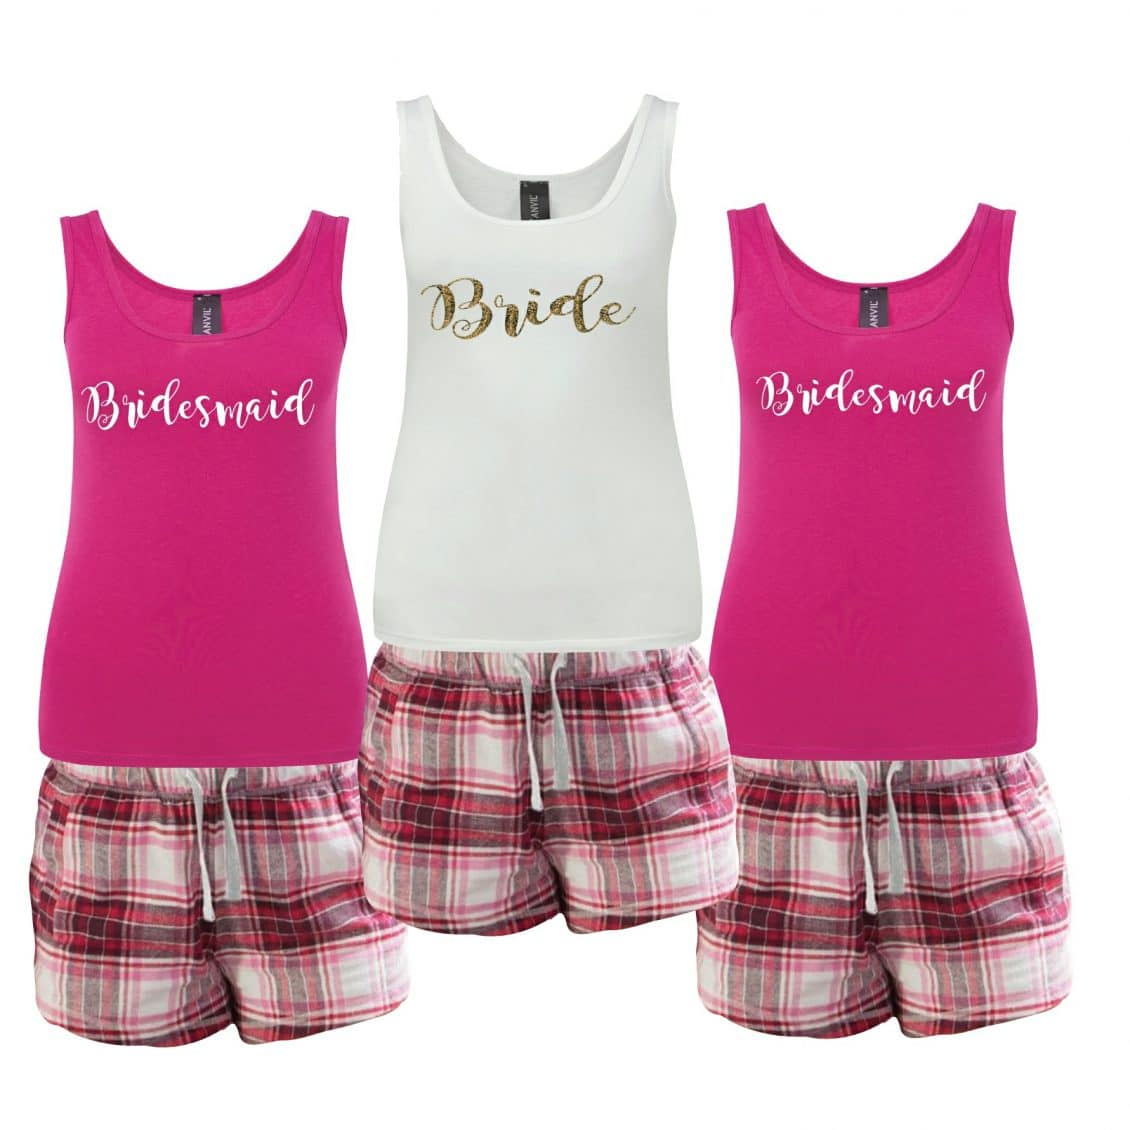 0619254f1a Bridesmaid and Bridal Party Pyjamas - 5 Useful Buying Tips